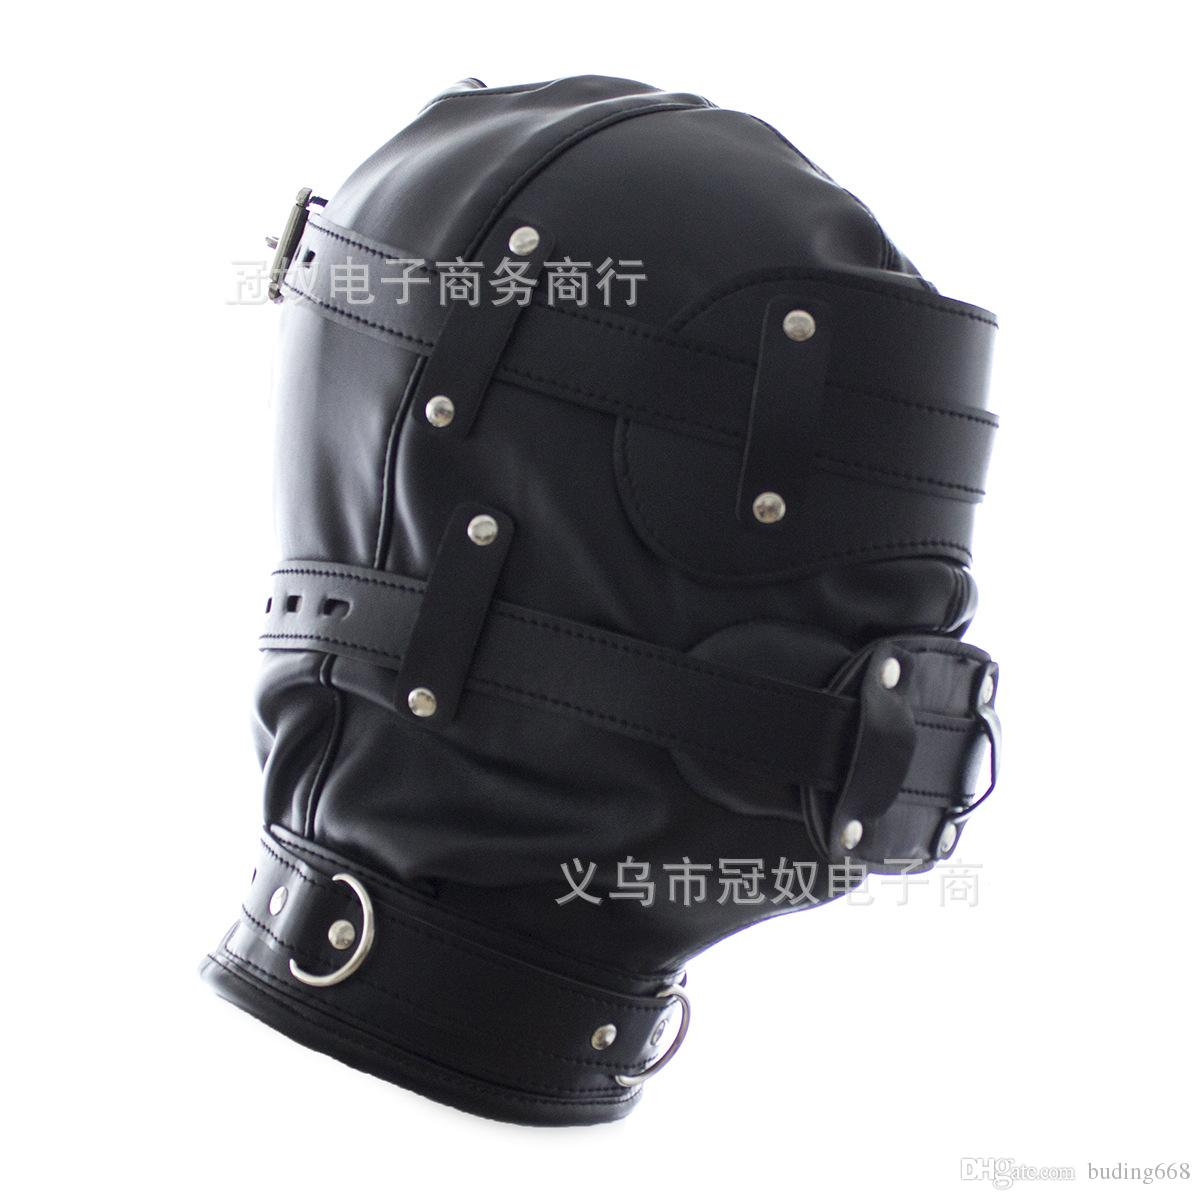 2020 Erotic Sex BDSM Bondage Leather Hood for Adult Play Games Full Masks Fetish Face Blindfold for Couple Games W996